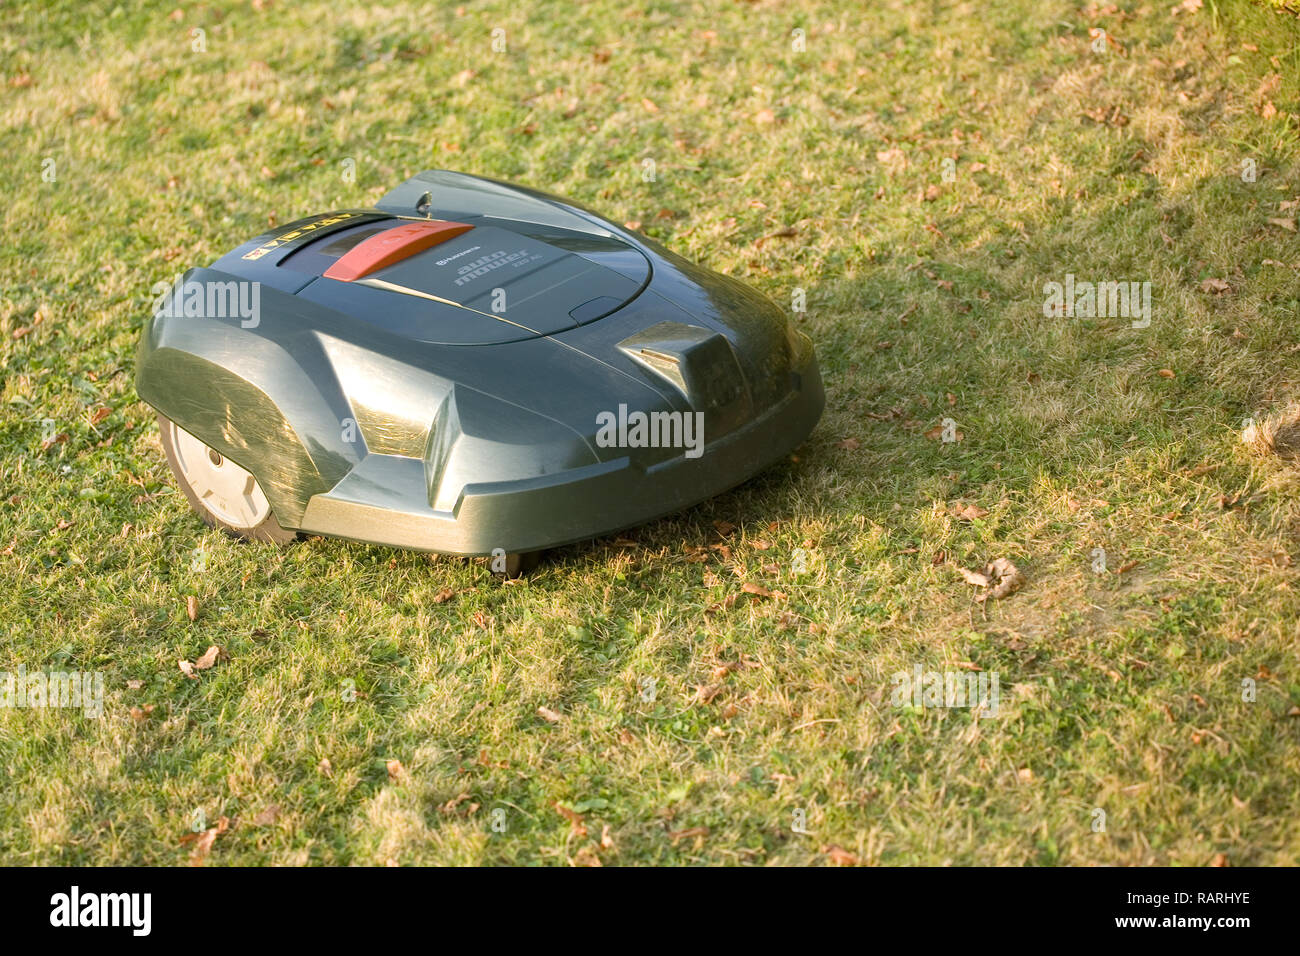 Automatic robot lawn mower cutting grass from a side position view - Stock Image